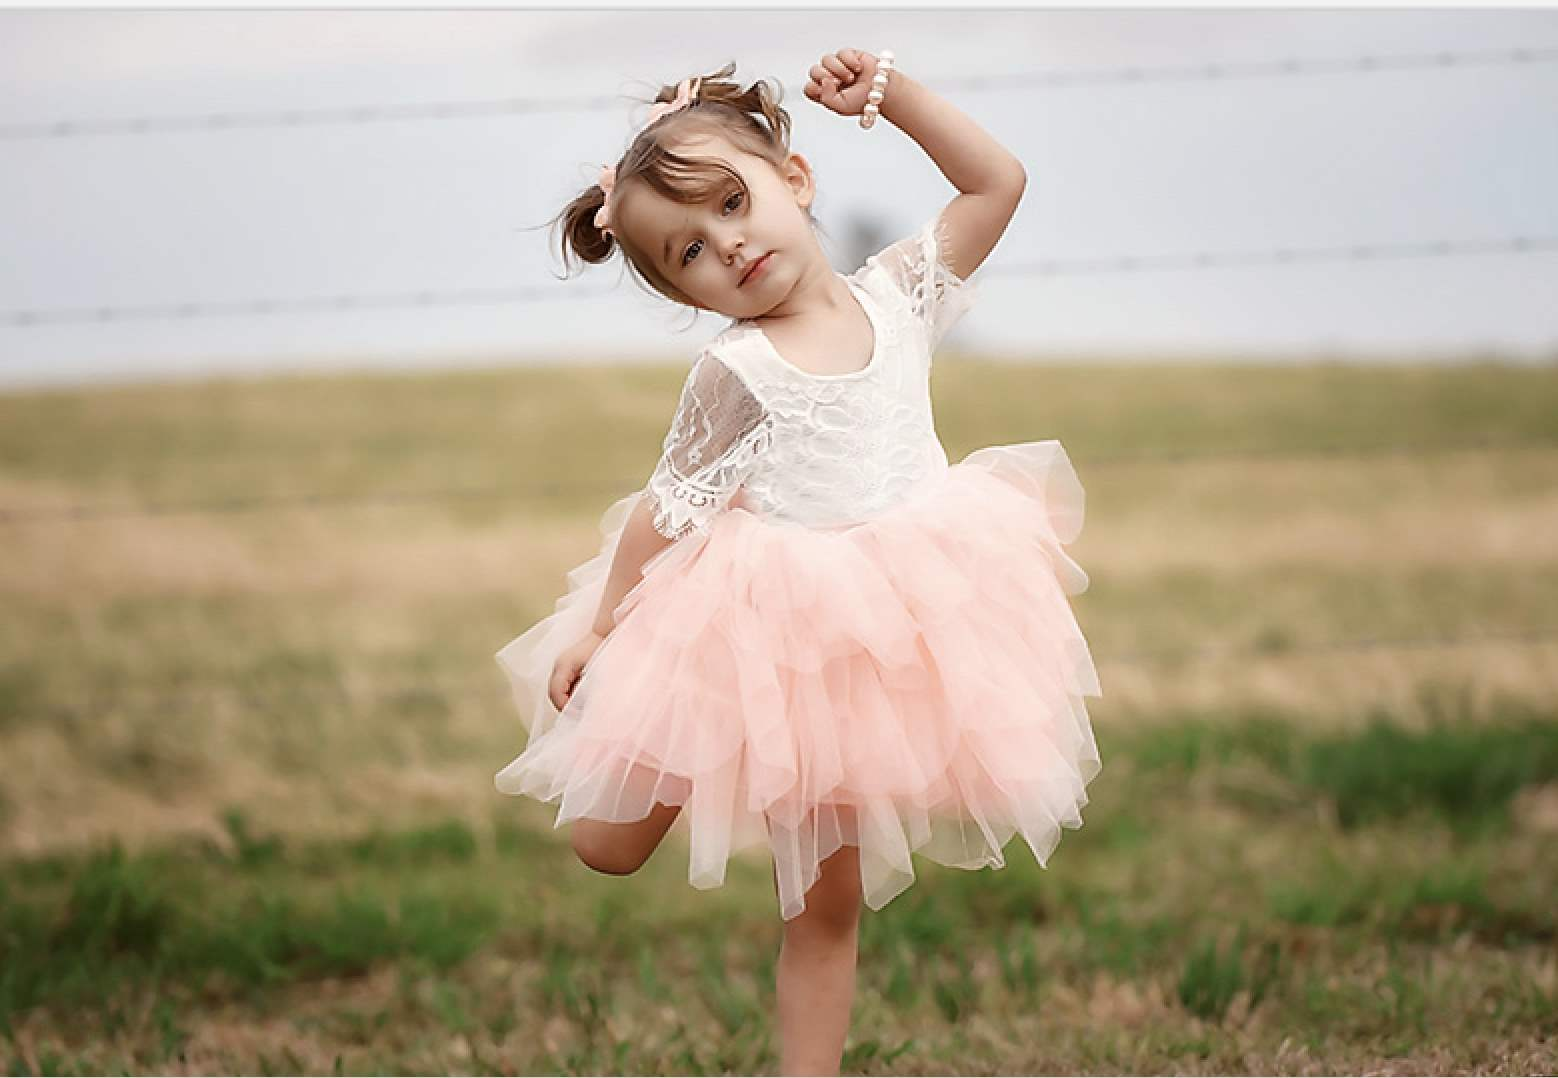 e2d5257a2c9d1 All Dolled Up Tutu Dress {Pink} - Coco Blush Boutique - Where little ...